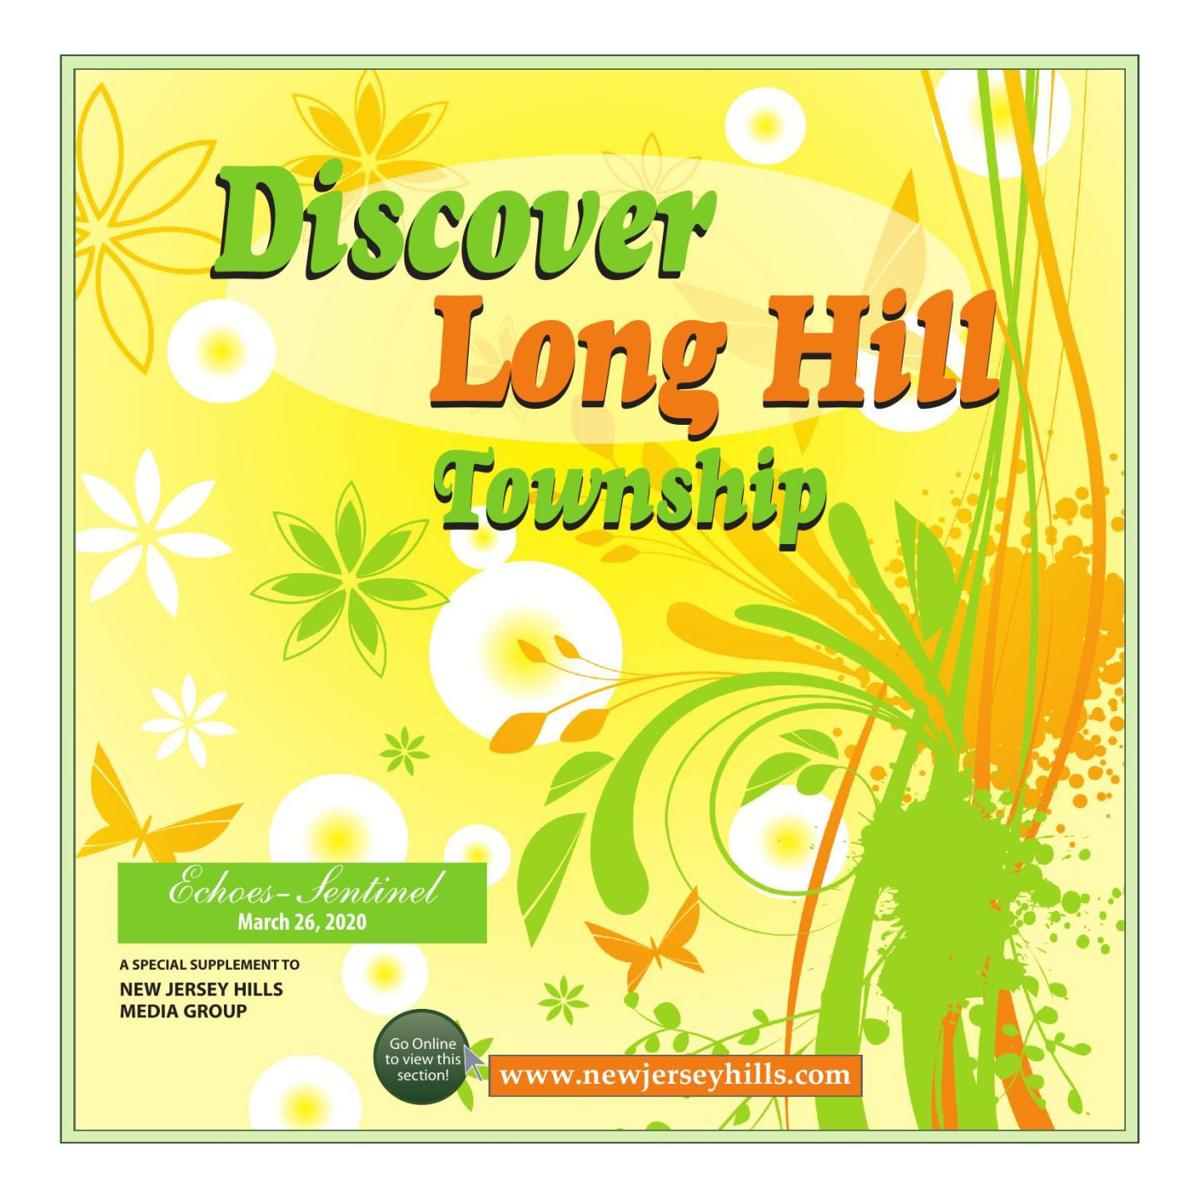 Discover Long Hill Township - March 26, 2020